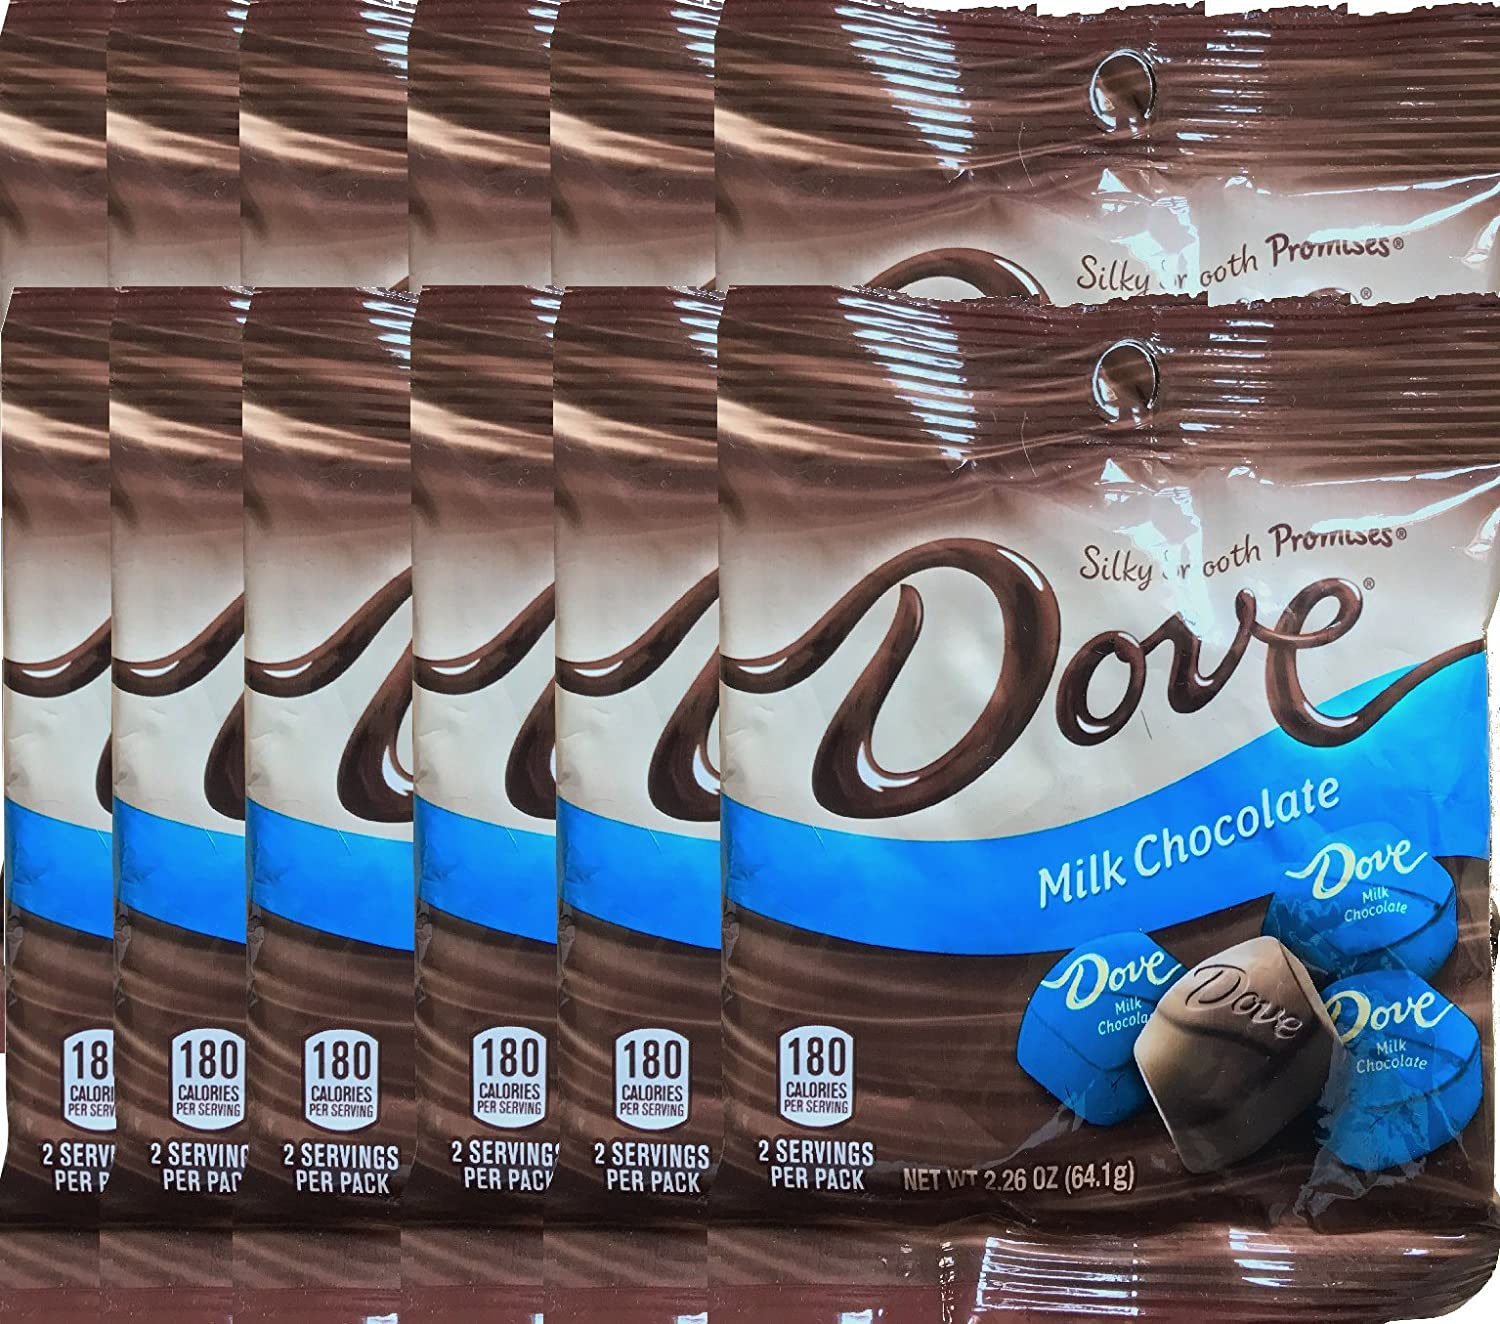 Dove Milk Chocolate Silky Smooth Promises Mini Party Favor Candy Bags Net Wt 2.26 Oz (12)